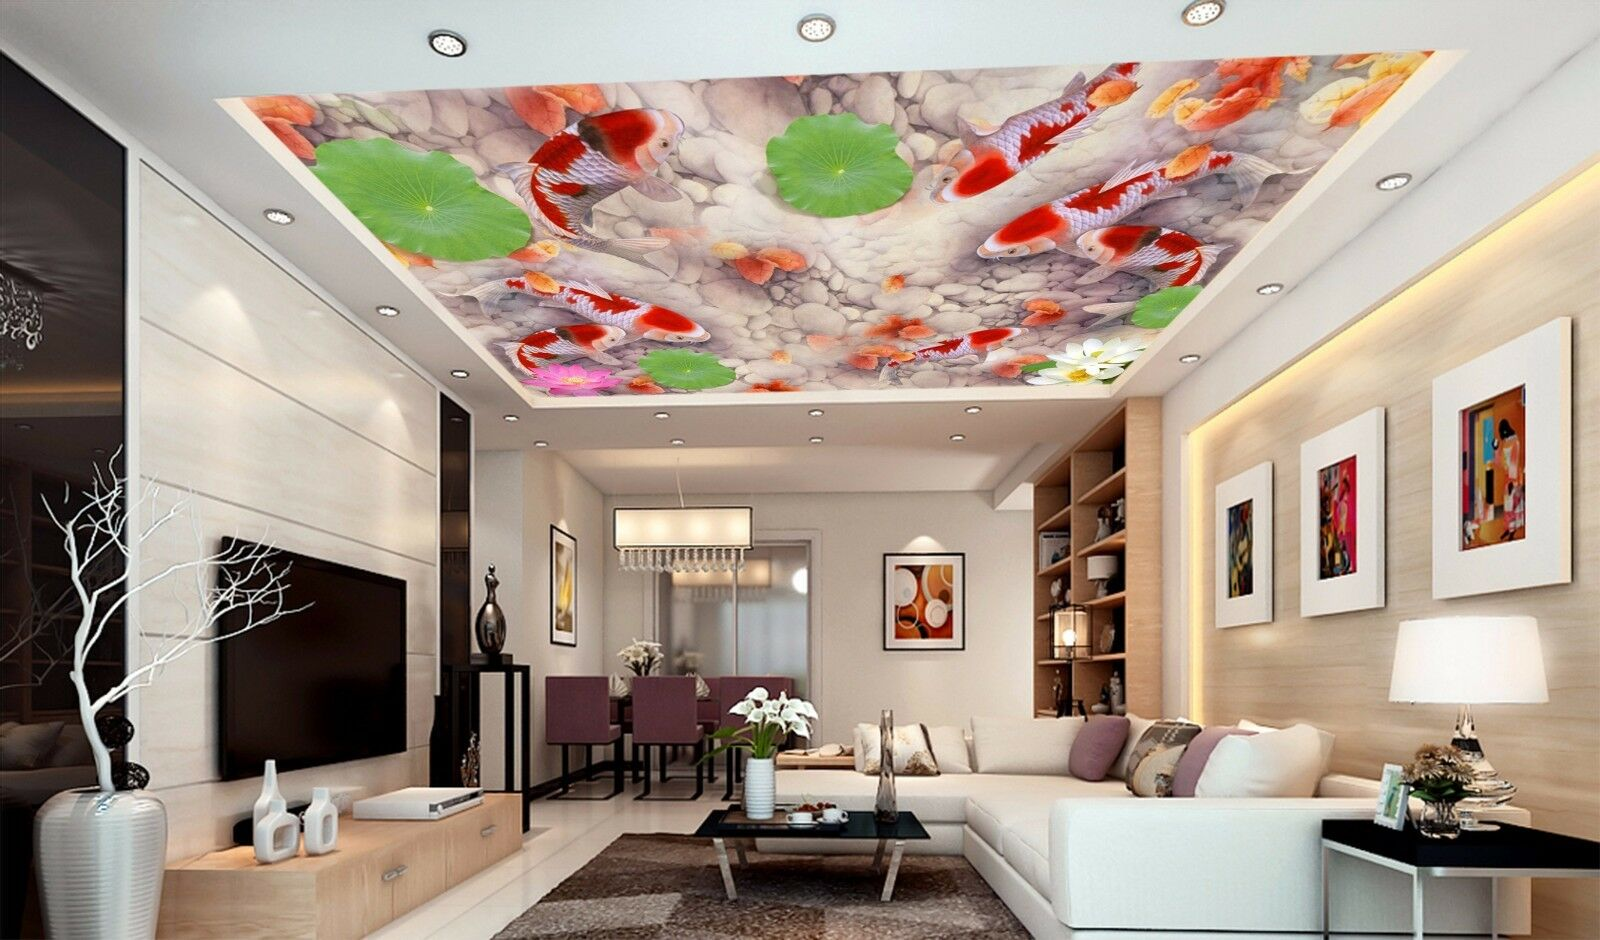 3D Carp Pool Ceiling WallPaper Murals Wall Print Decal Deco AJ WALLPAPER AU